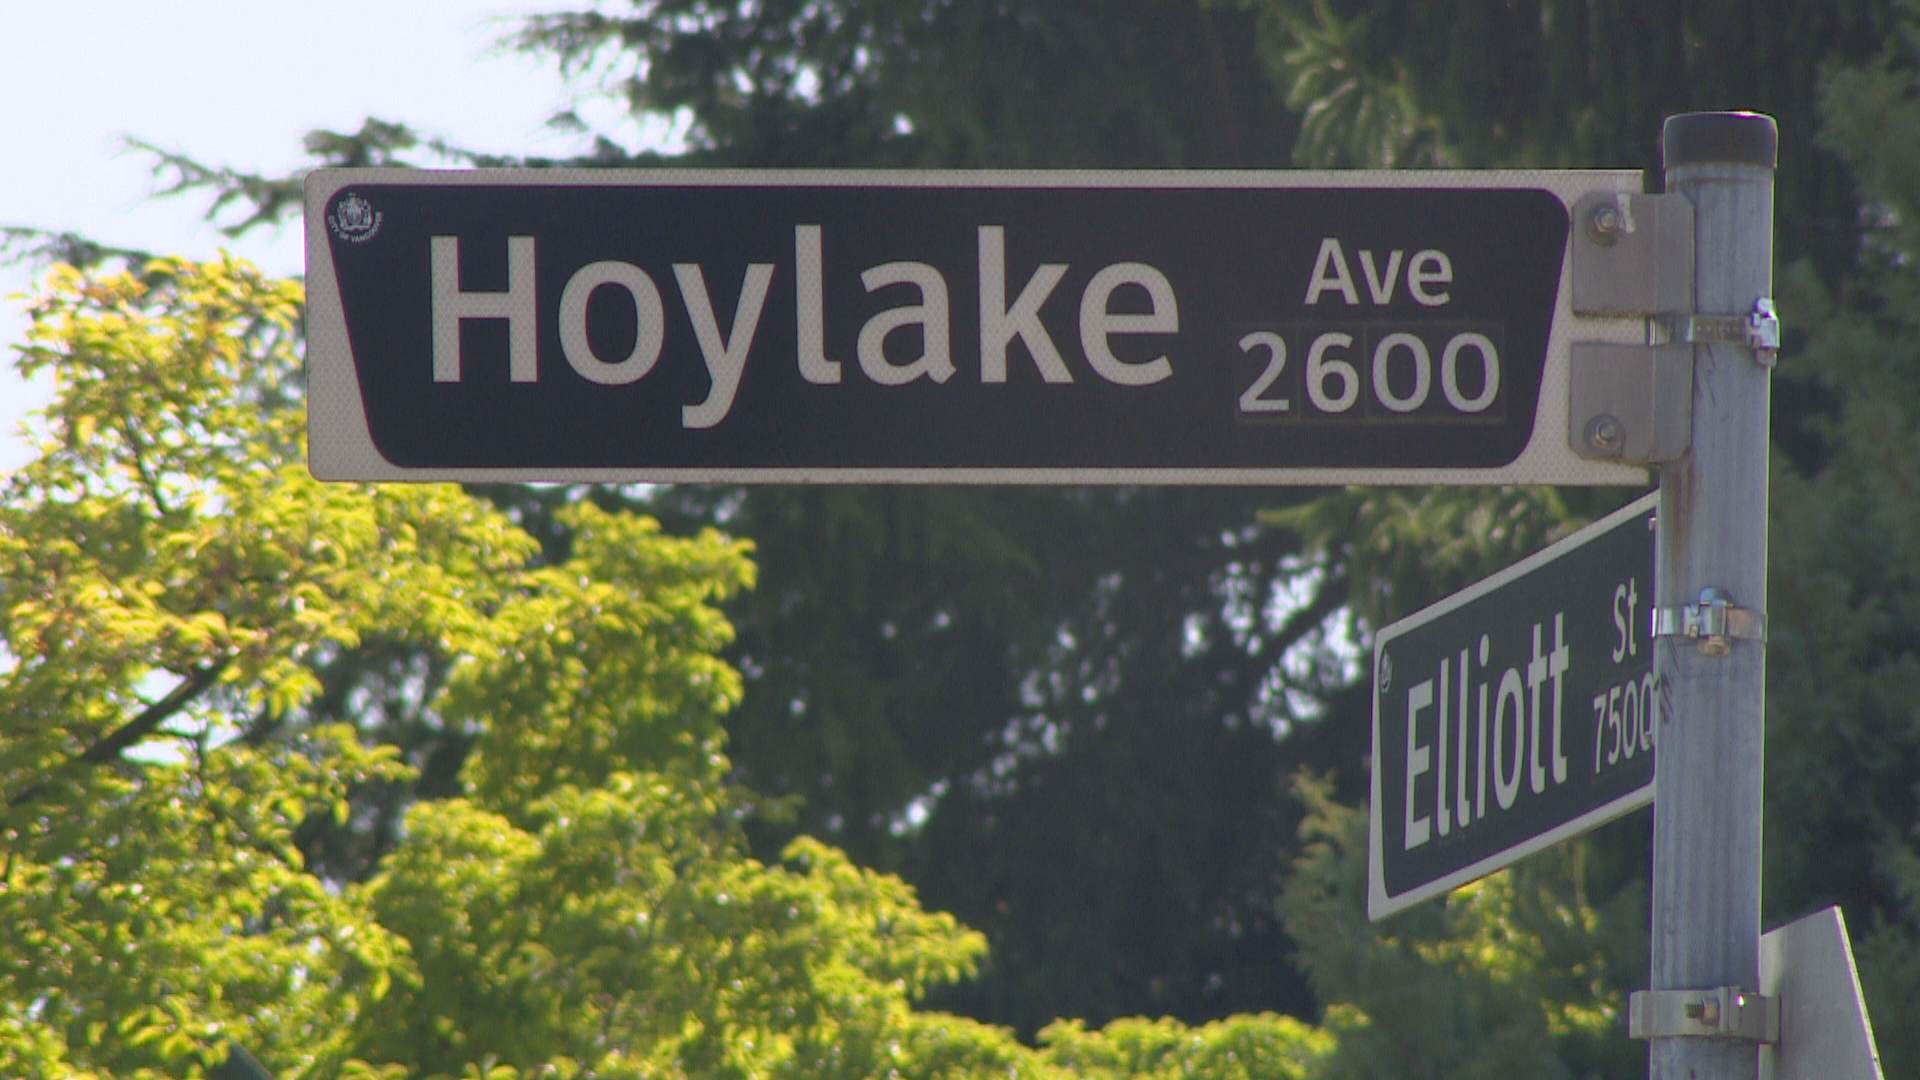 Hoylake, England is home to the famous Royal Liverpool Golf Club, one of six golf courses in the United Kingdom that inspired a street name in Vancouver. Jim Mulleder/CBC